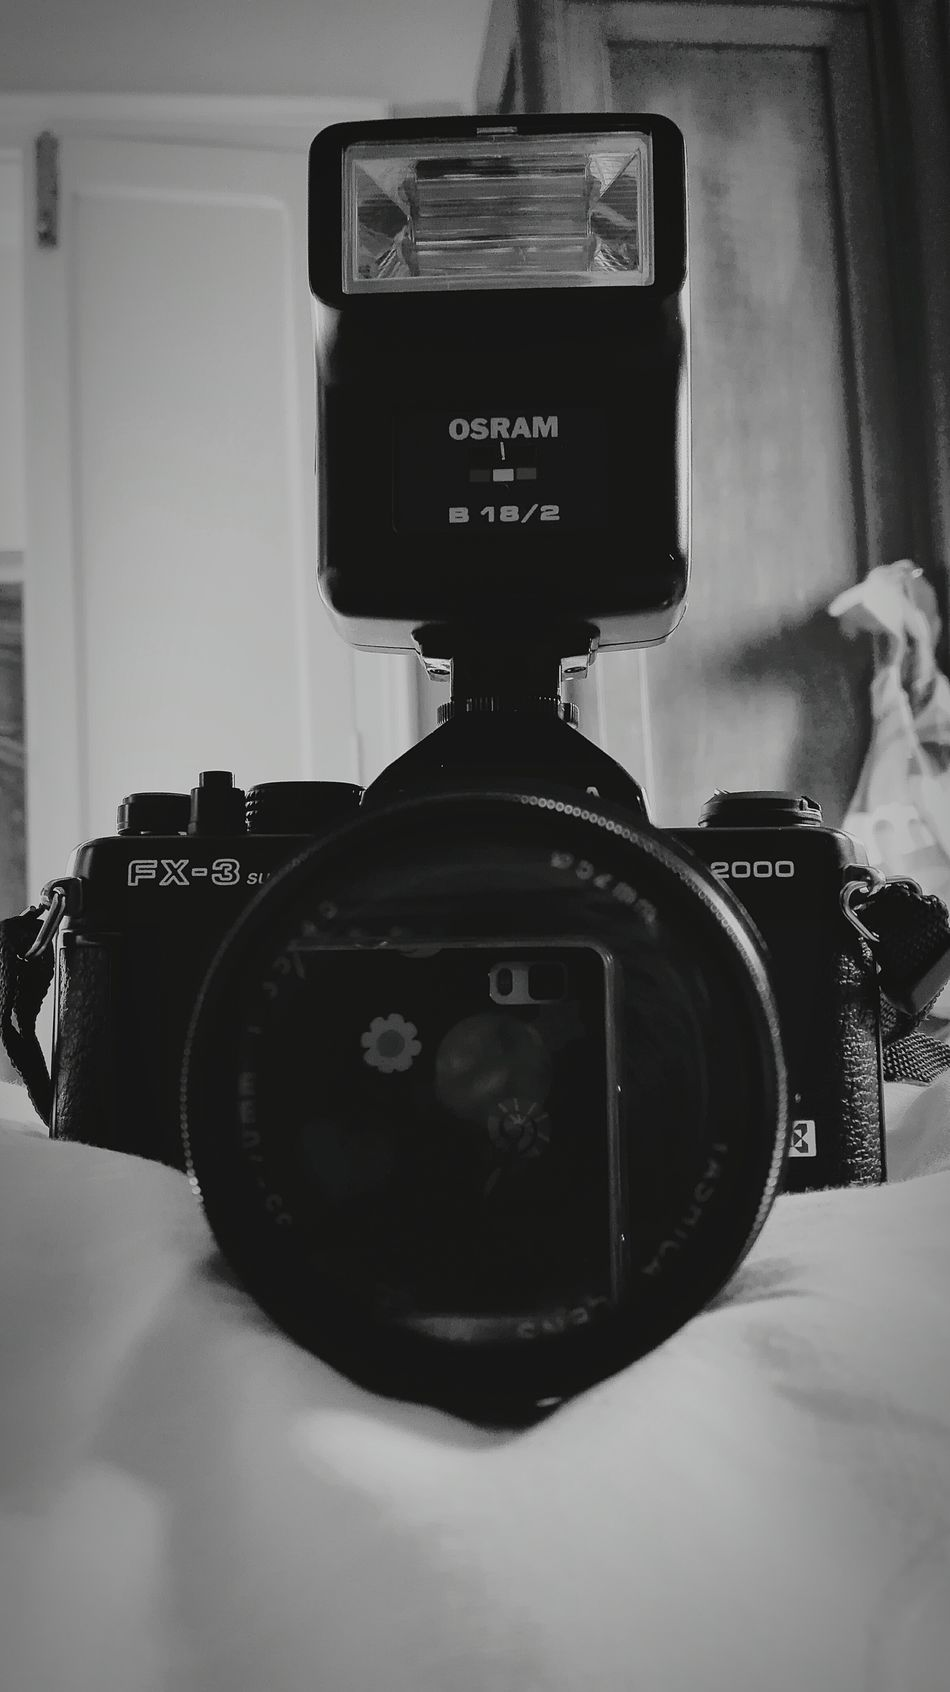 Back to the future Reflex Old-fashioned Camera - Photographic Equipment Retro Styled Still Life Yashicafx3super2000 Analogicalcamera Passionforphotography Harusphotos Photography Themes Black & White Black And White Photography